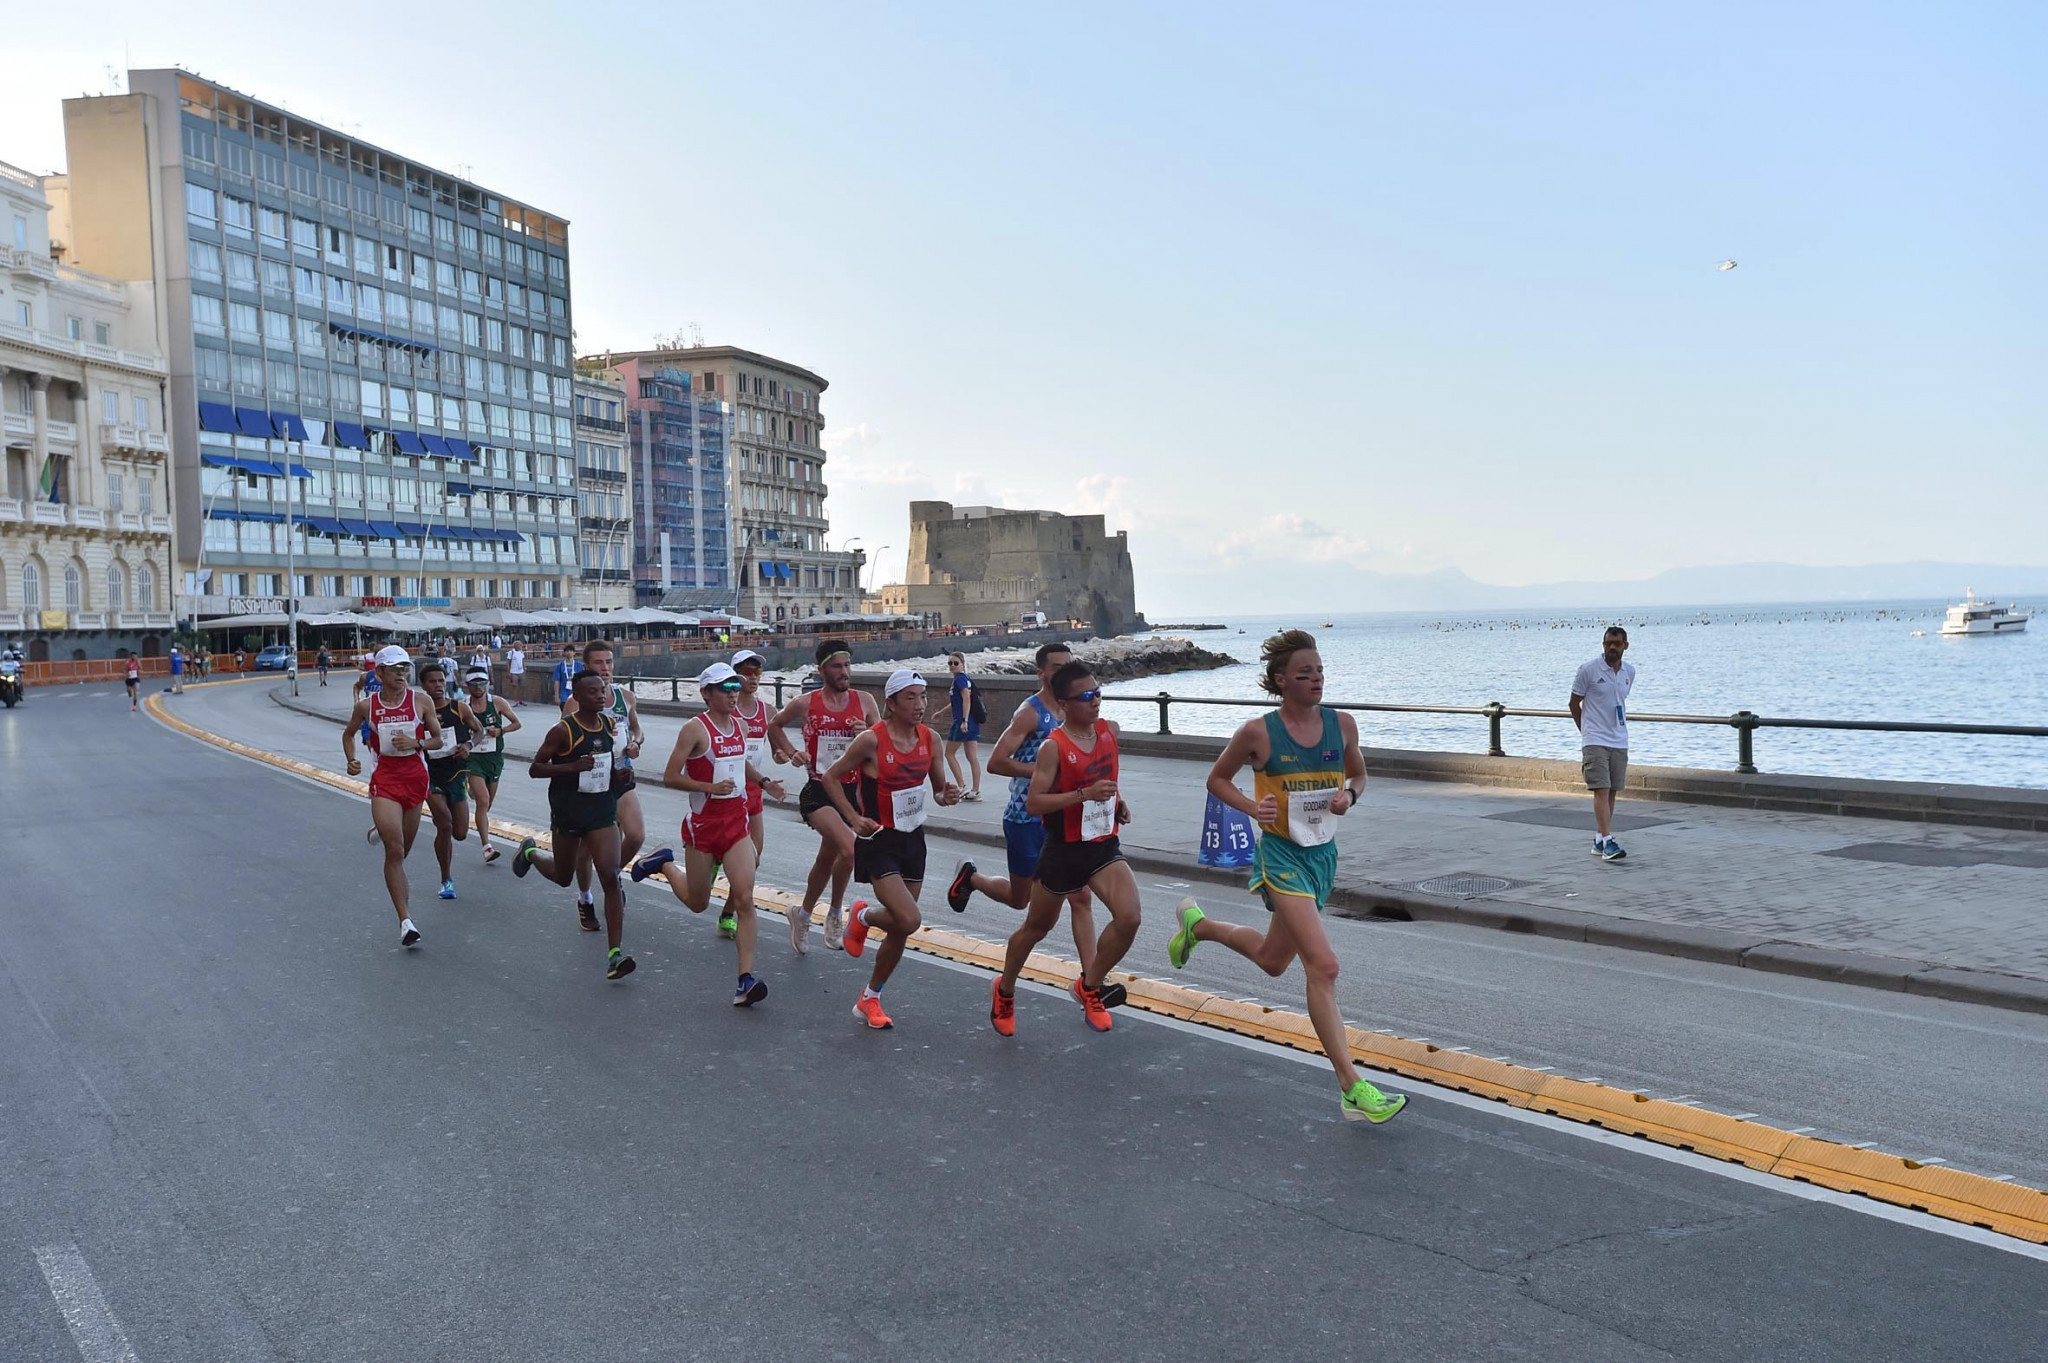 Chinese disqualification for breaking IAAF refreshment rules gives Japanese Naples 2019 half-marathon clean sweep